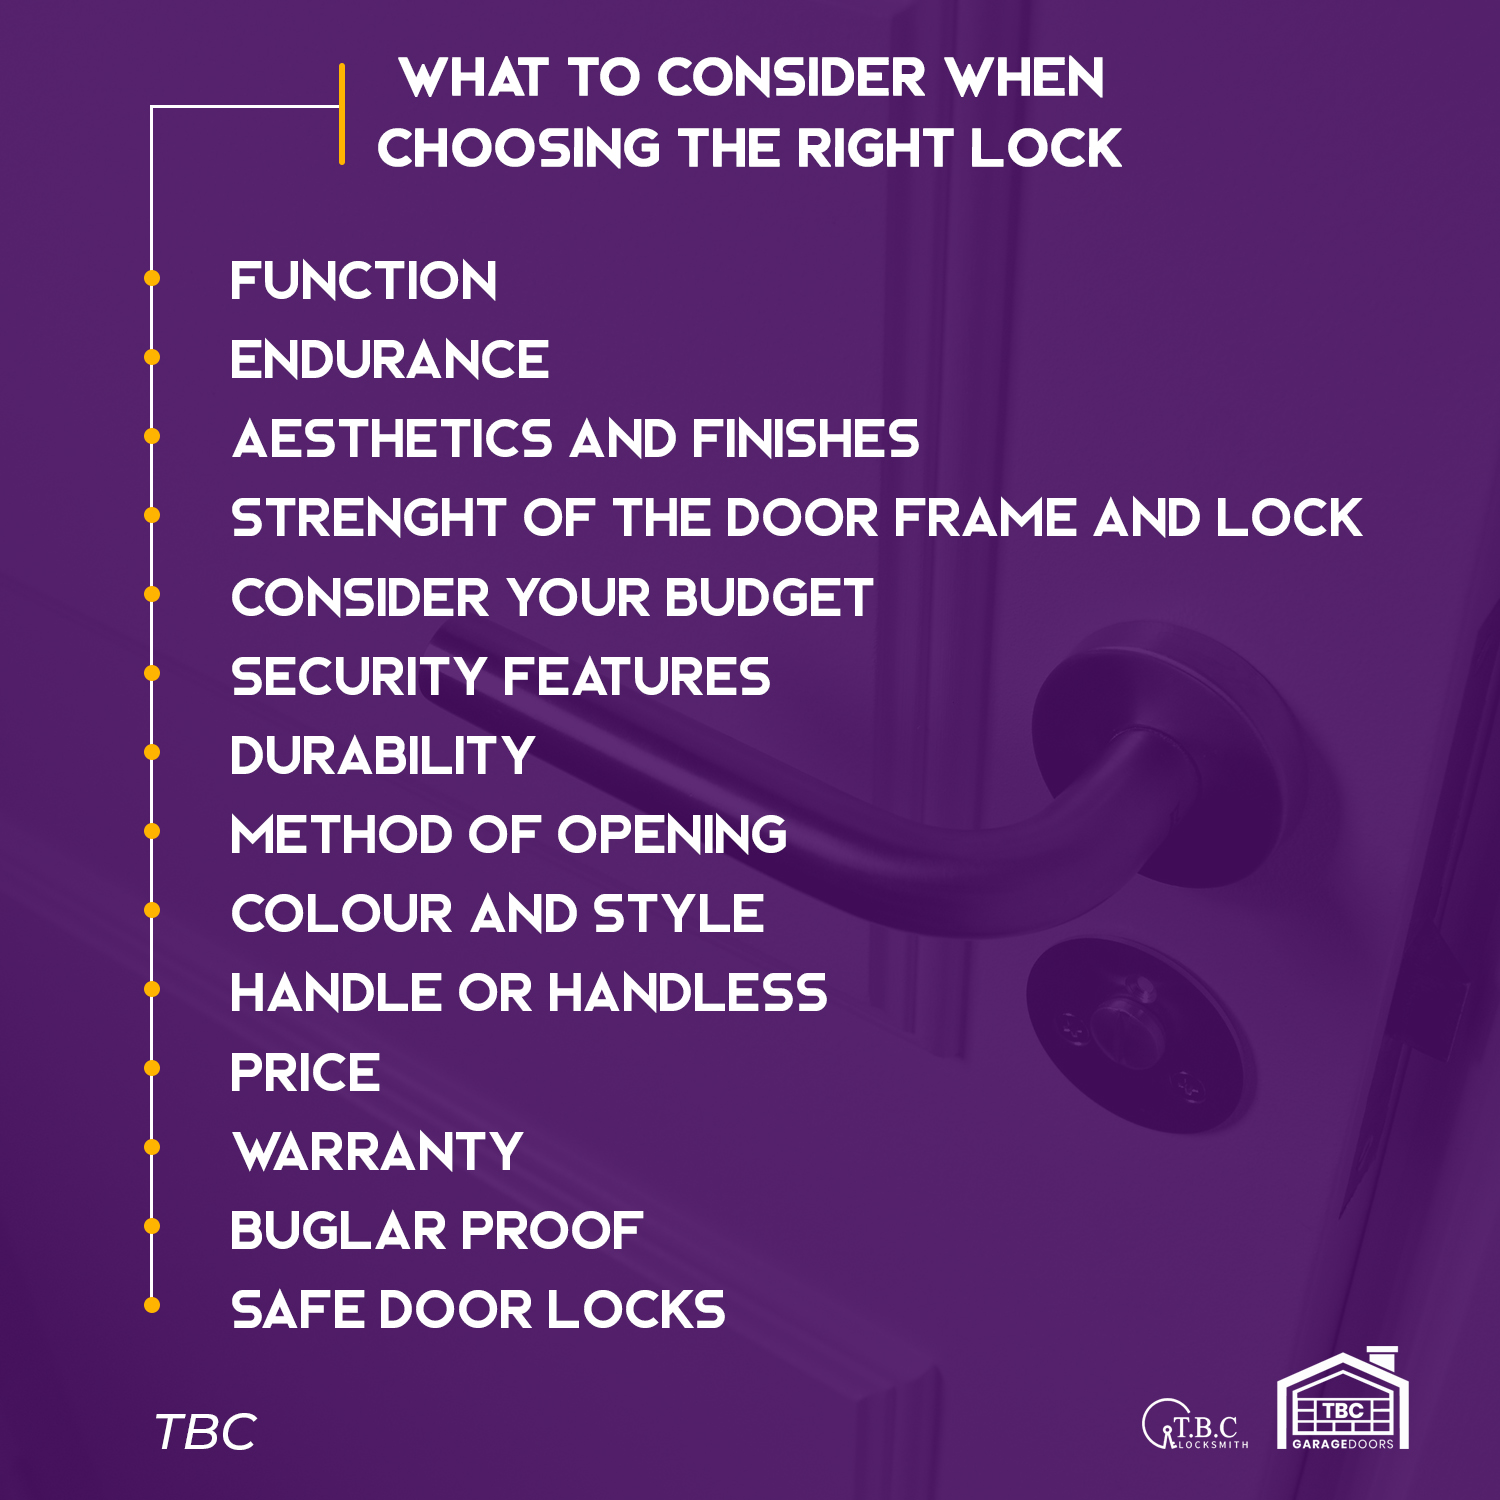 What to Consider When Choosing the Right Lock